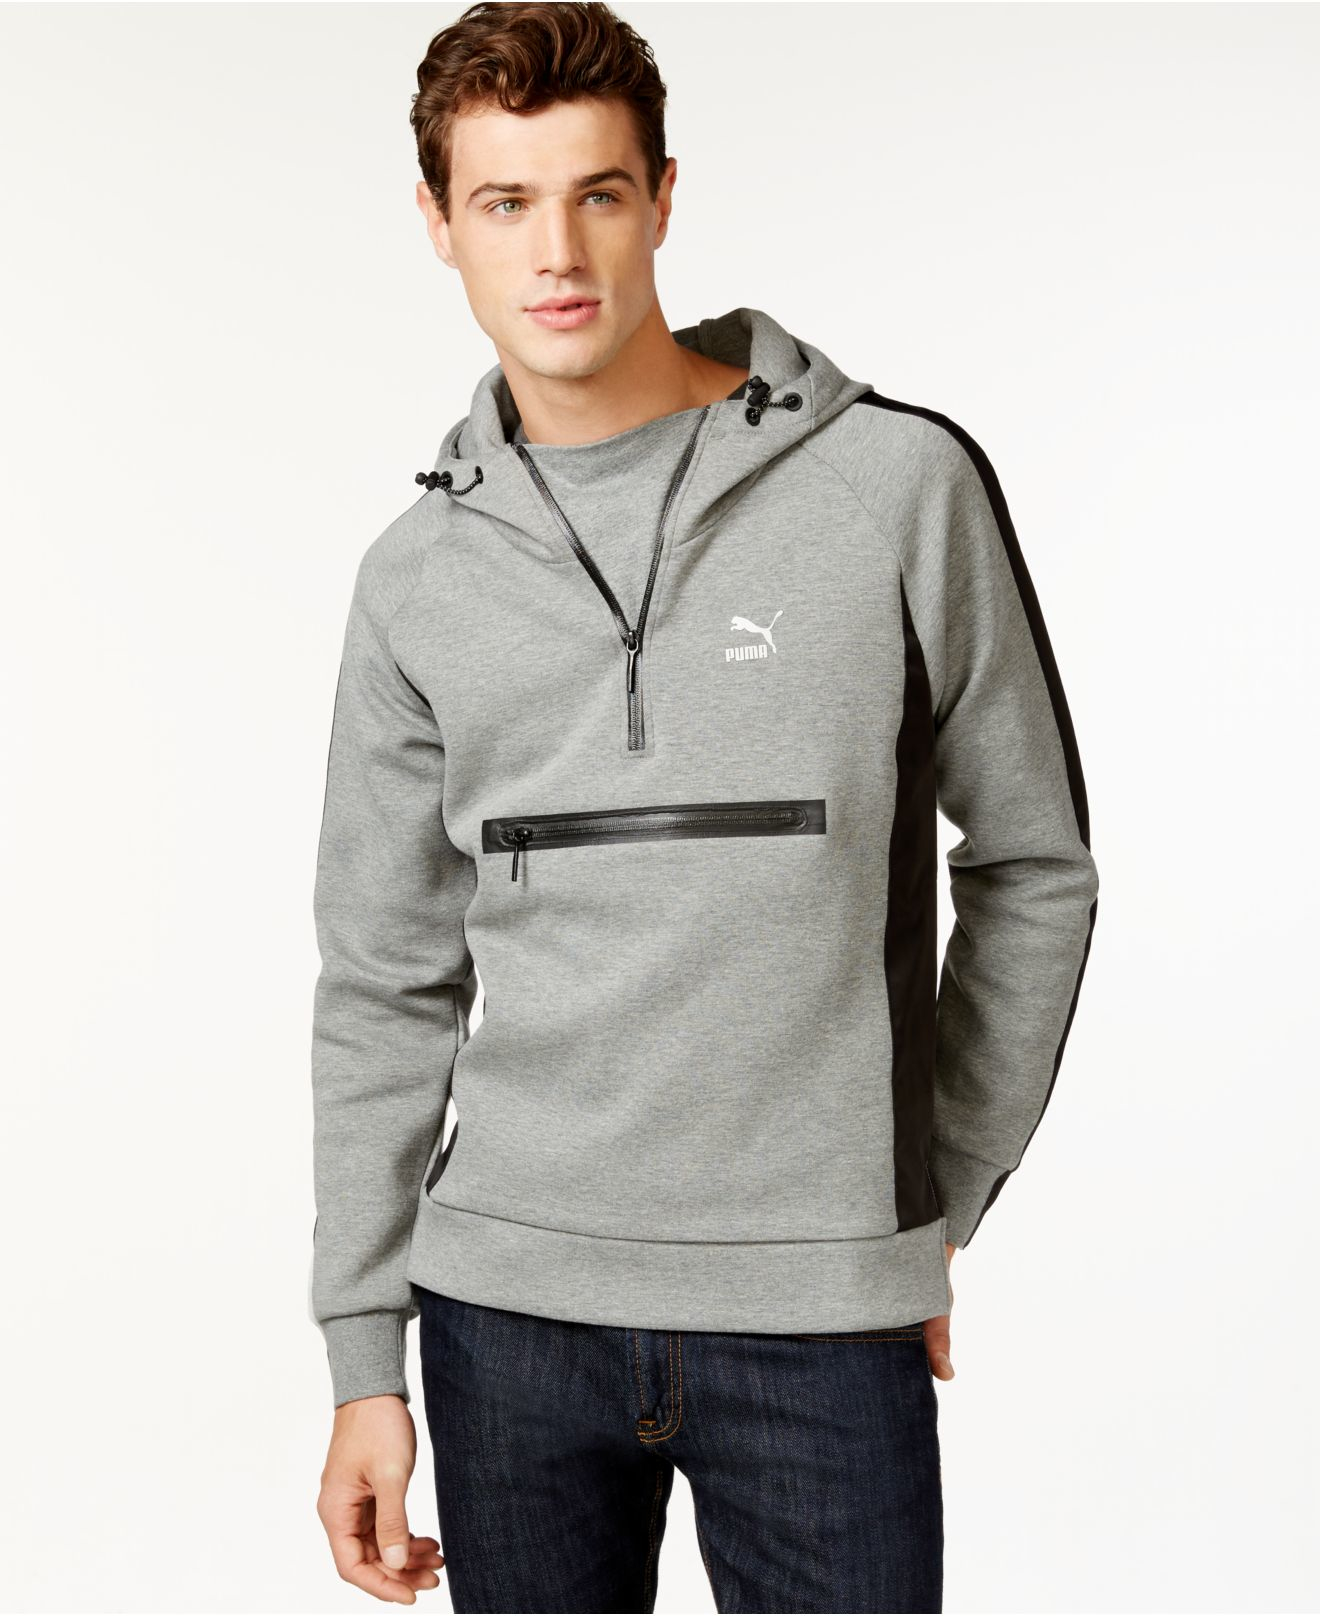 puma men 39 s evo savannah half zip pullover hoodie in gray. Black Bedroom Furniture Sets. Home Design Ideas